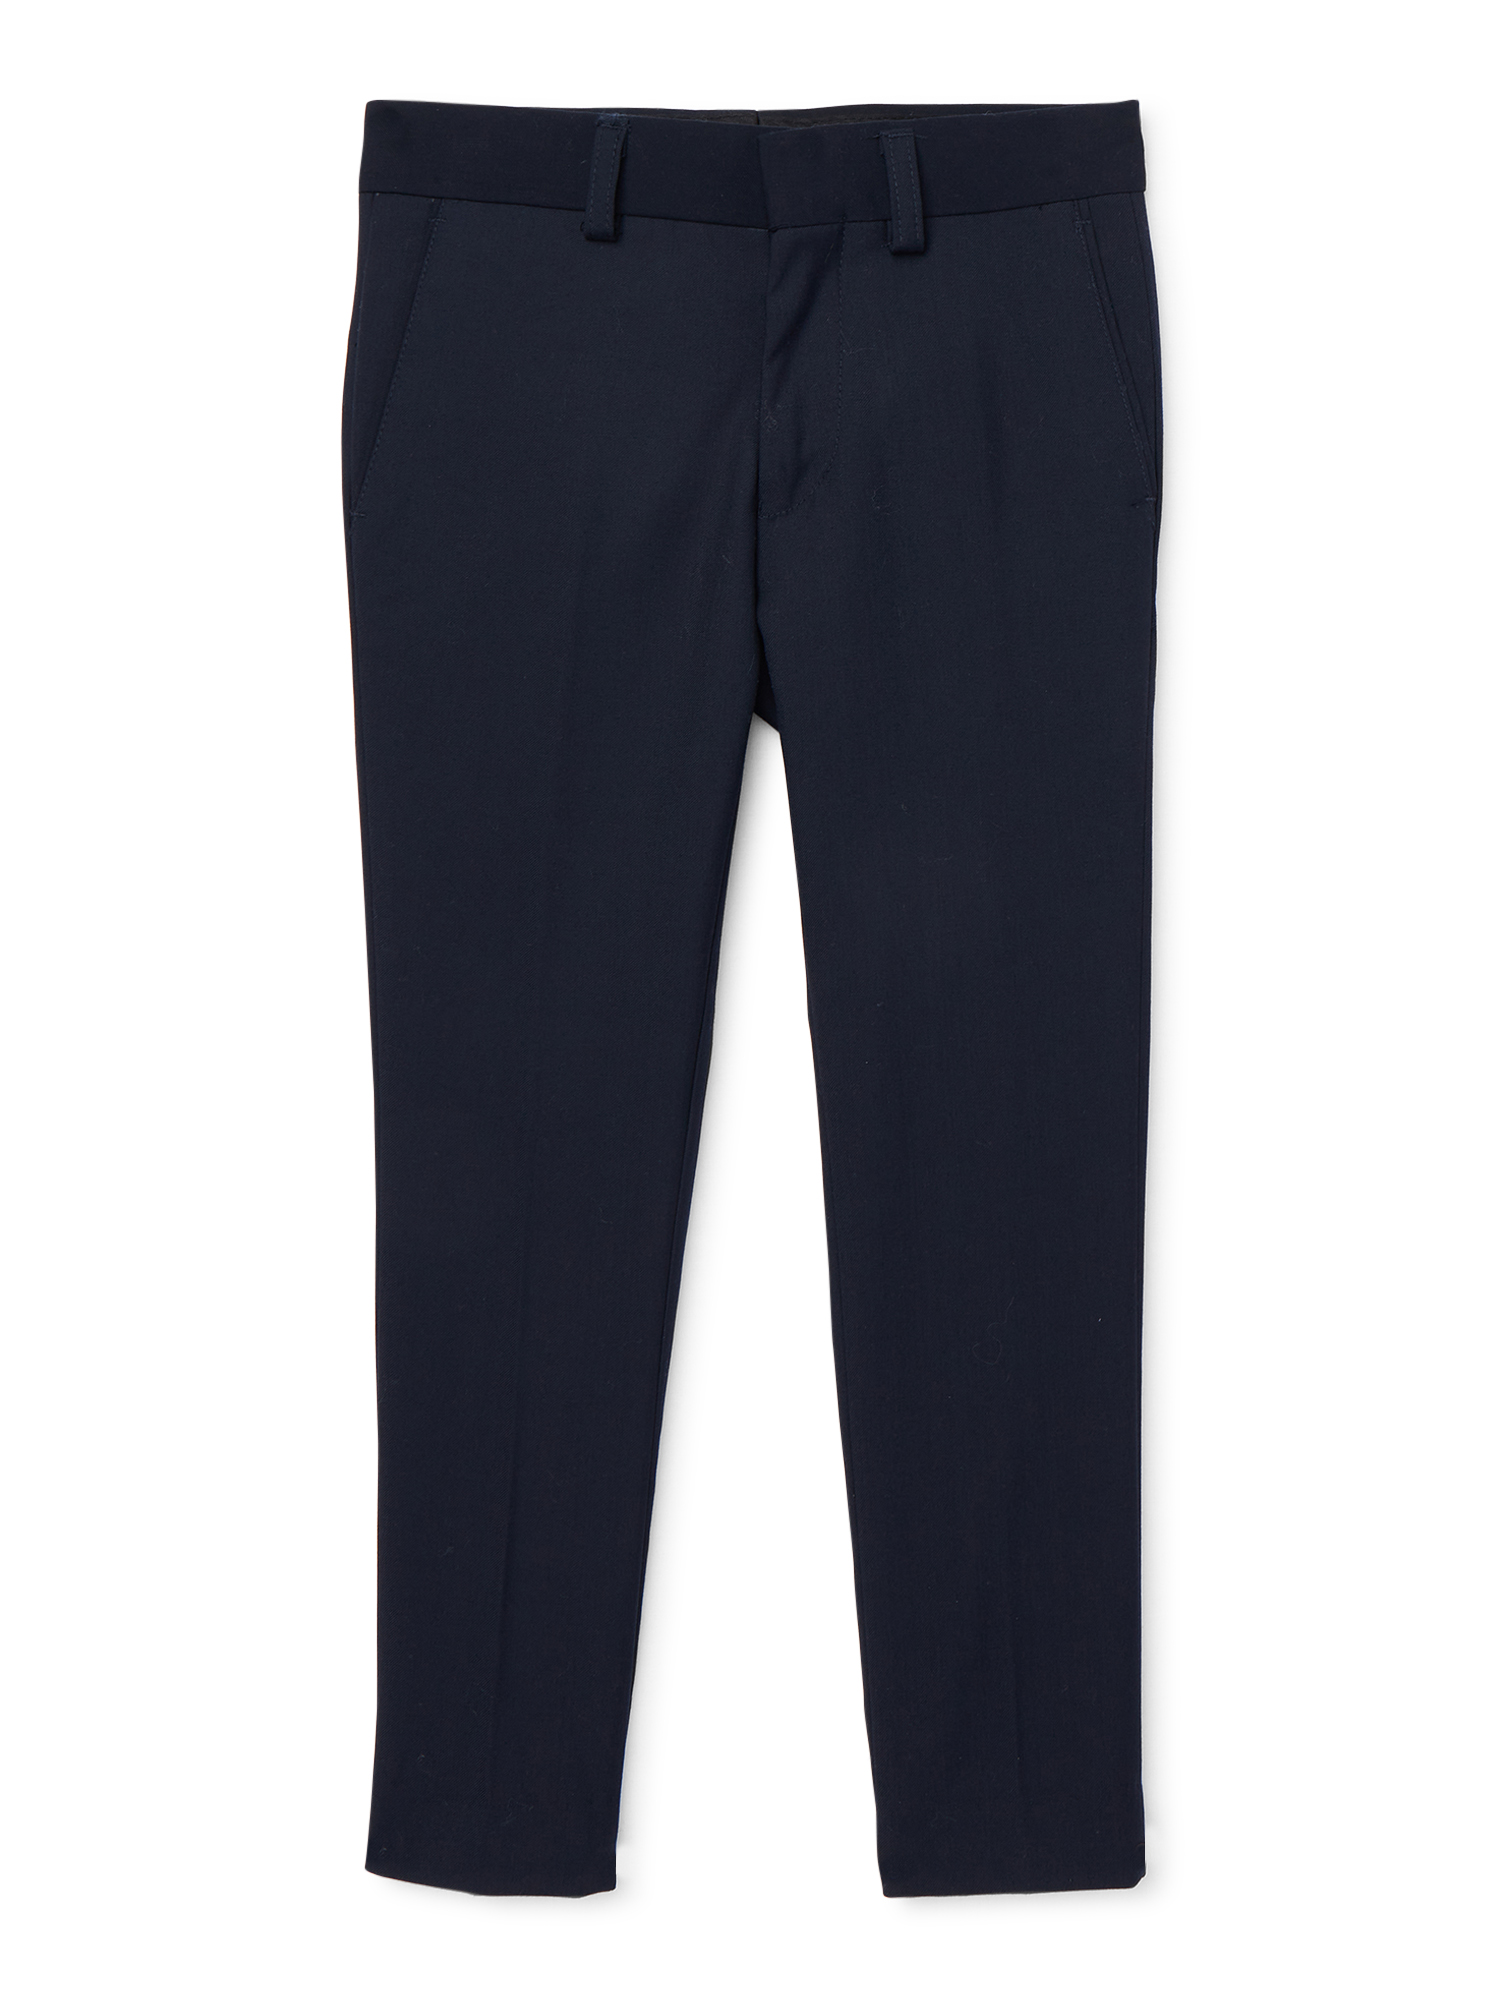 Spring Notion Big Boys Modern Fit Dress Pants